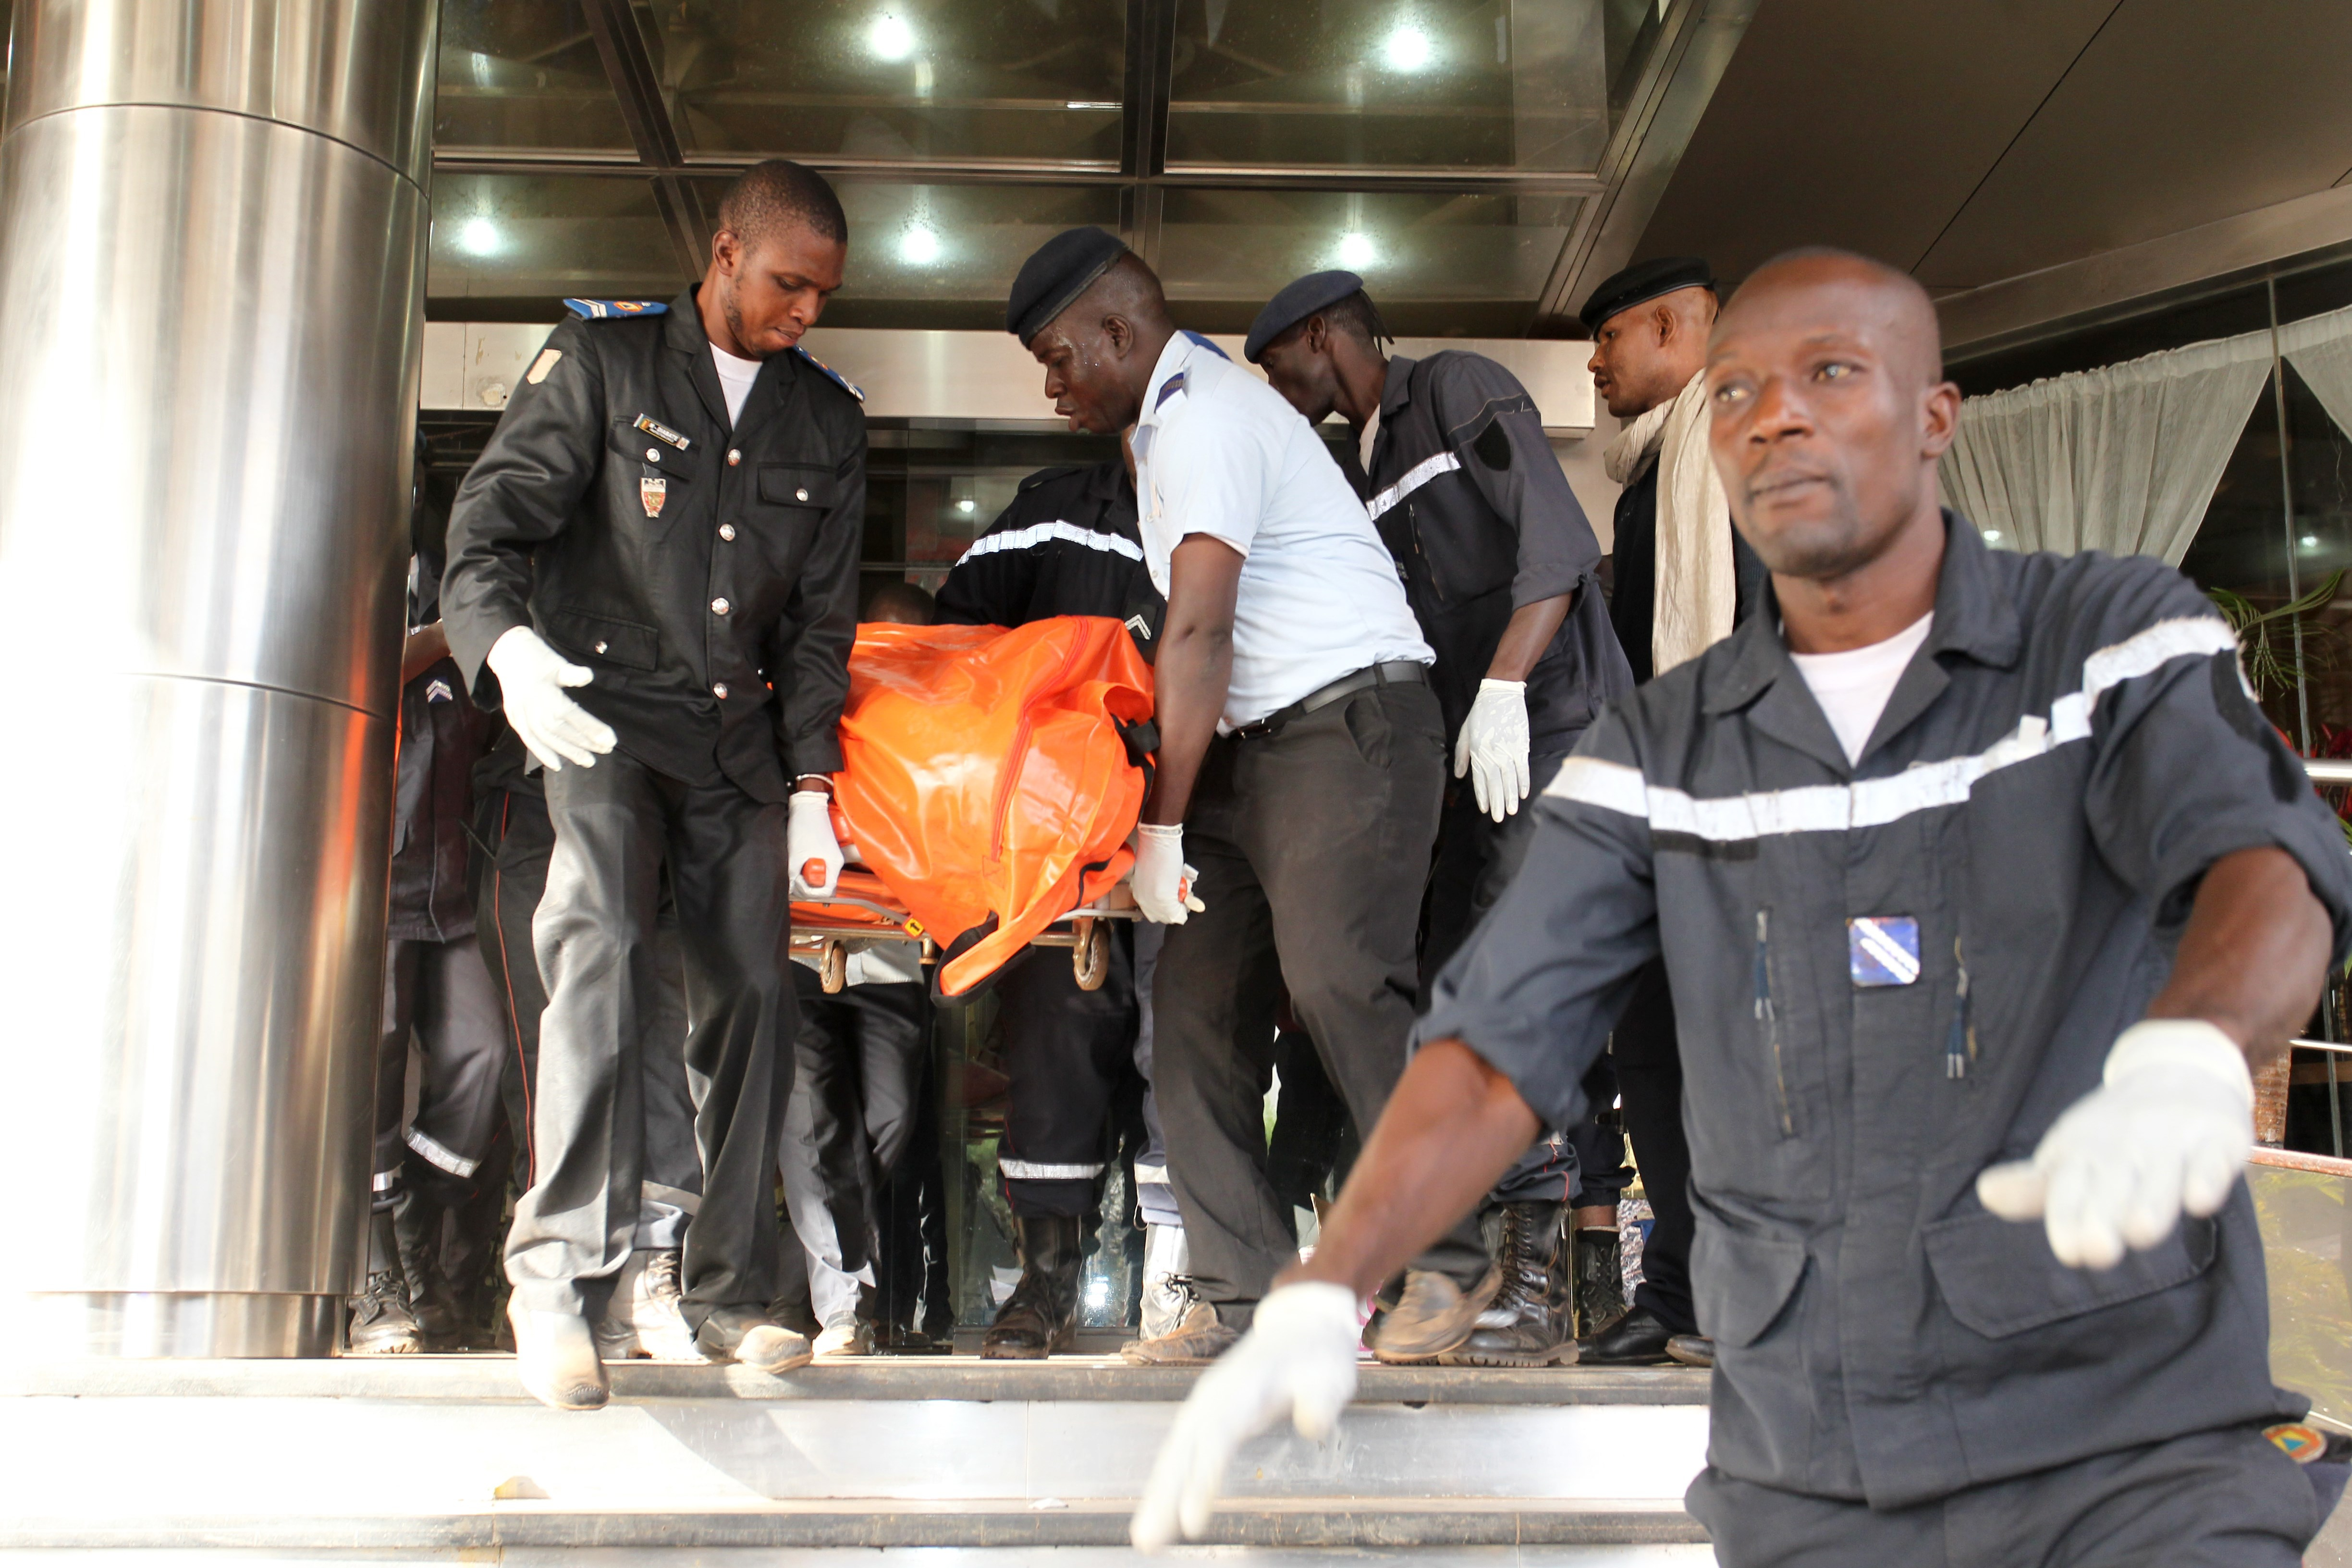 Officers evacuate bodies of victims from the Radisson Blu Hotel in Bamako, Mali,  on Nov. 20, 2015, where at least 19 people, including 3 Chinese executives, died